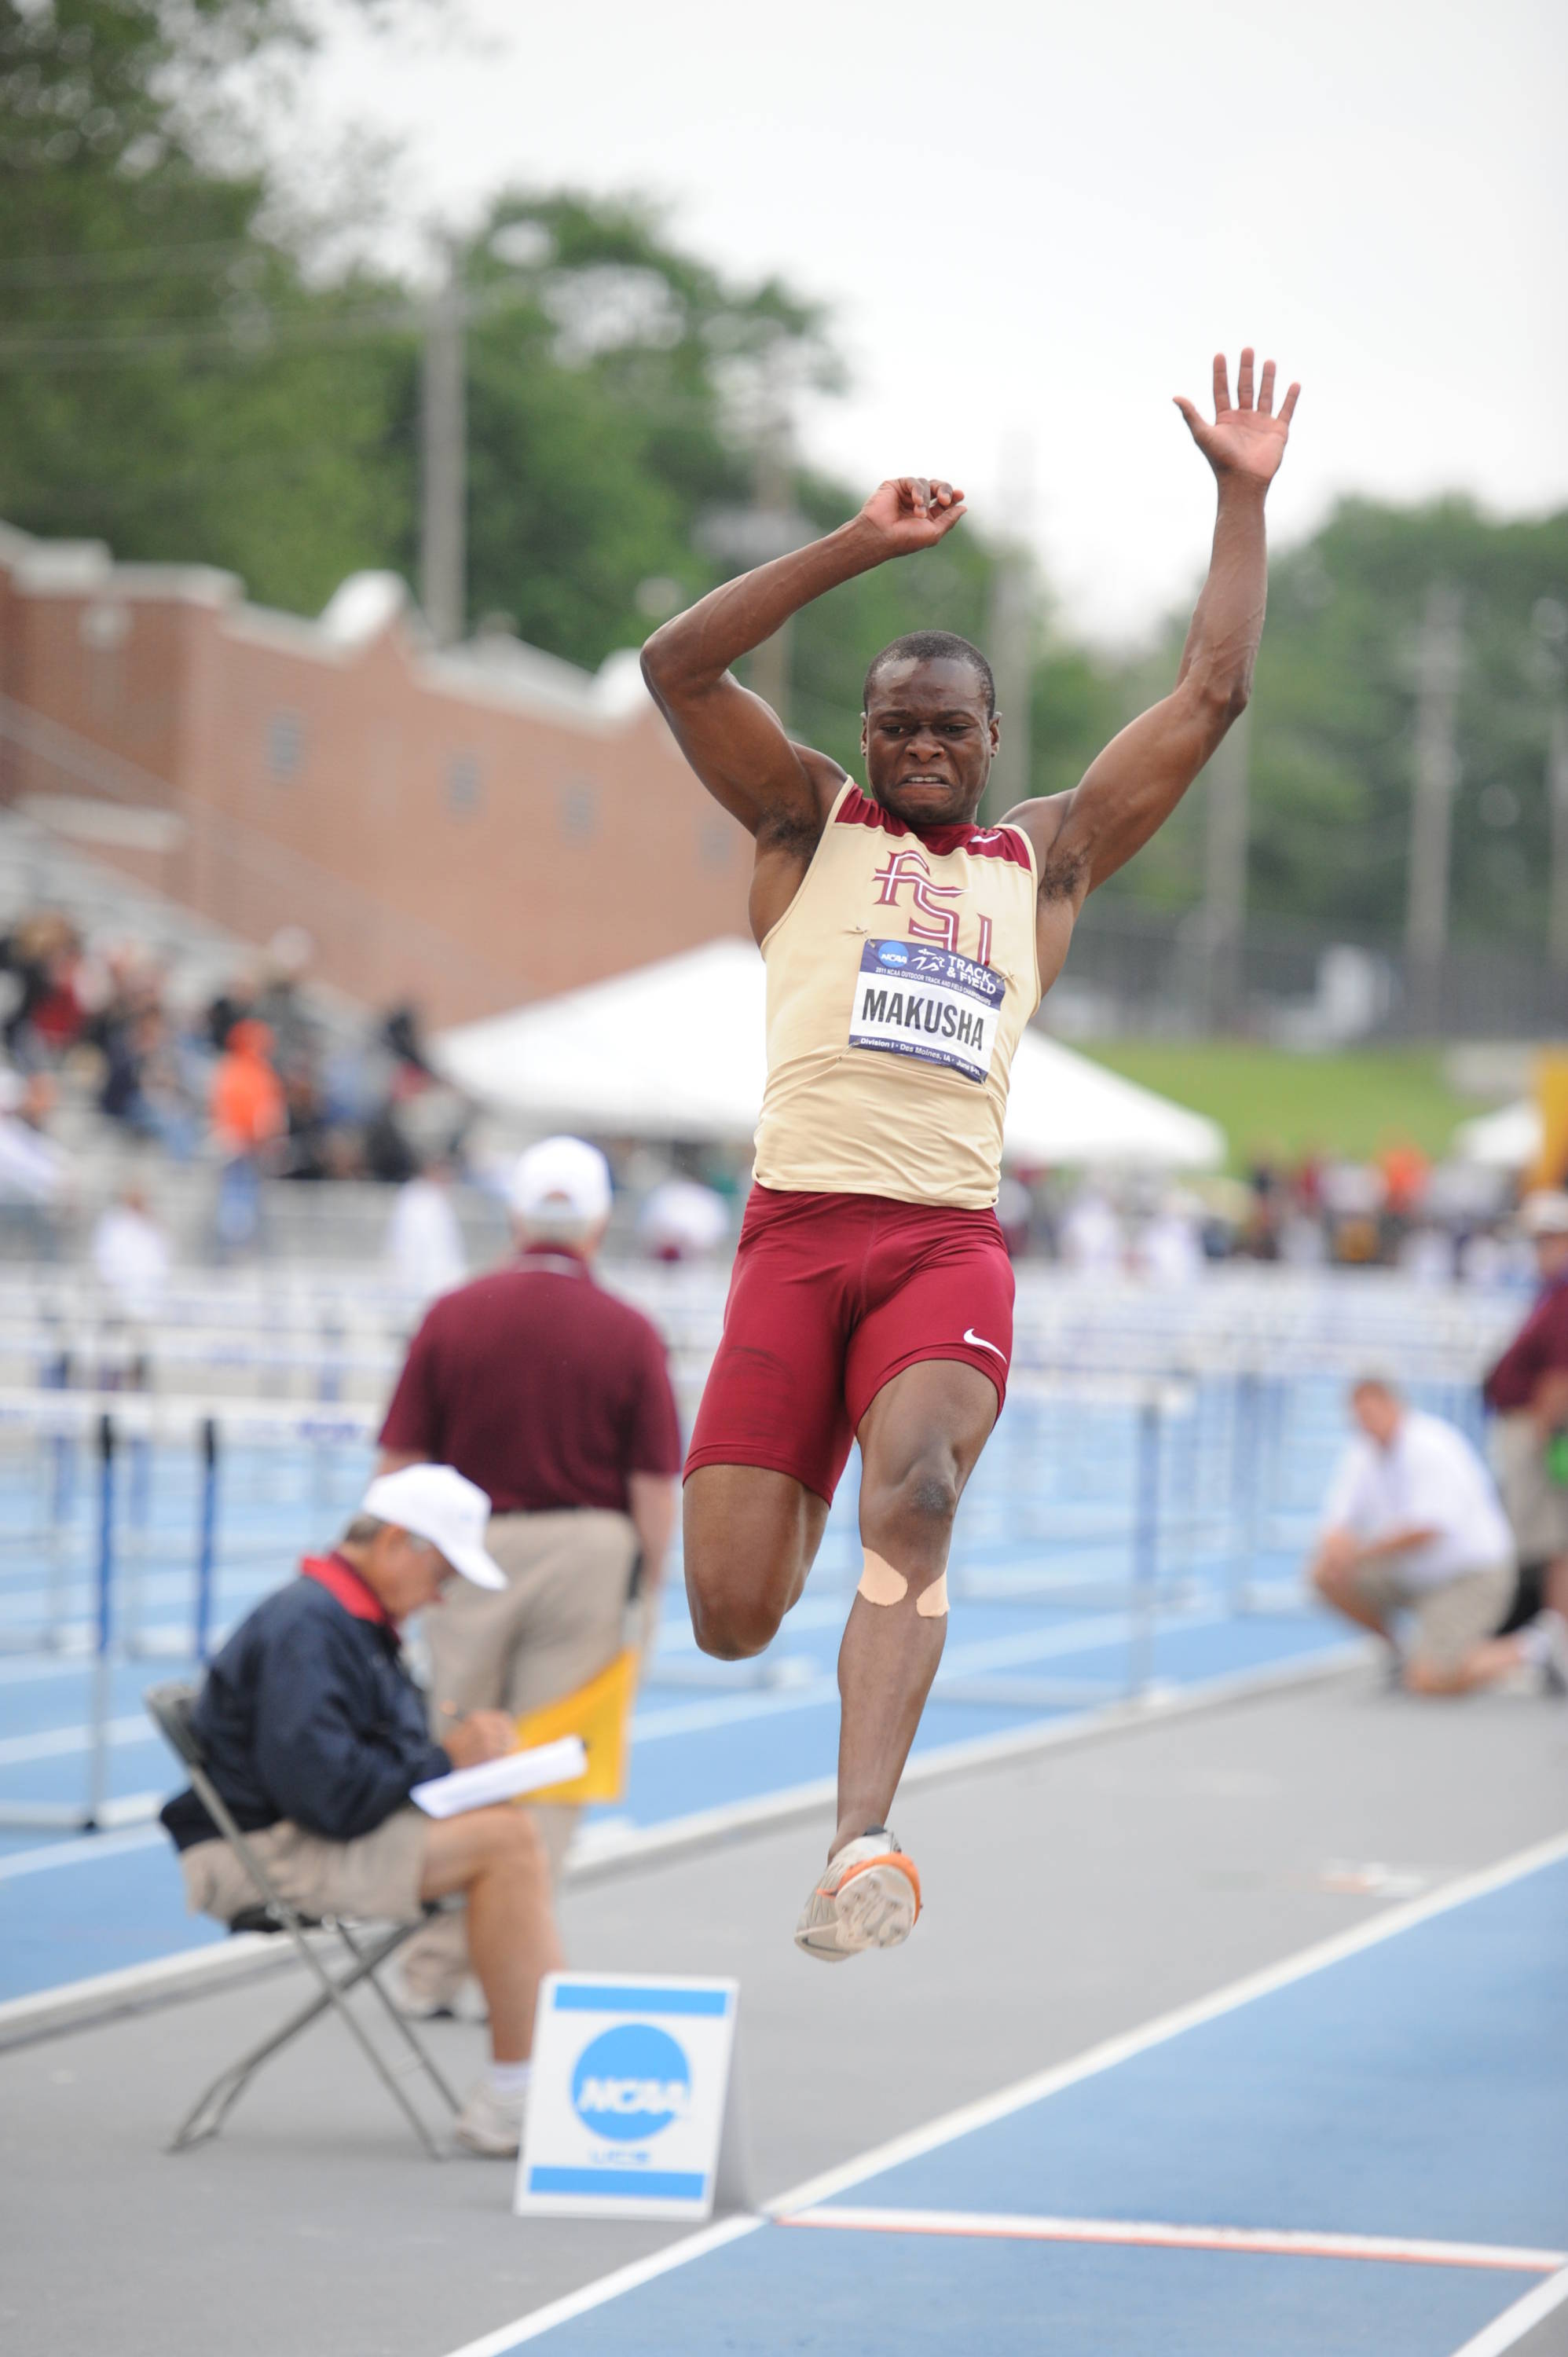 Ngoni followed his 100 win by soaring 18.40 in the long jump - the longest winning distance in 18 years at the meet - for his second victory and a place alongside track legends Carl Lewis and Jesse Owens.